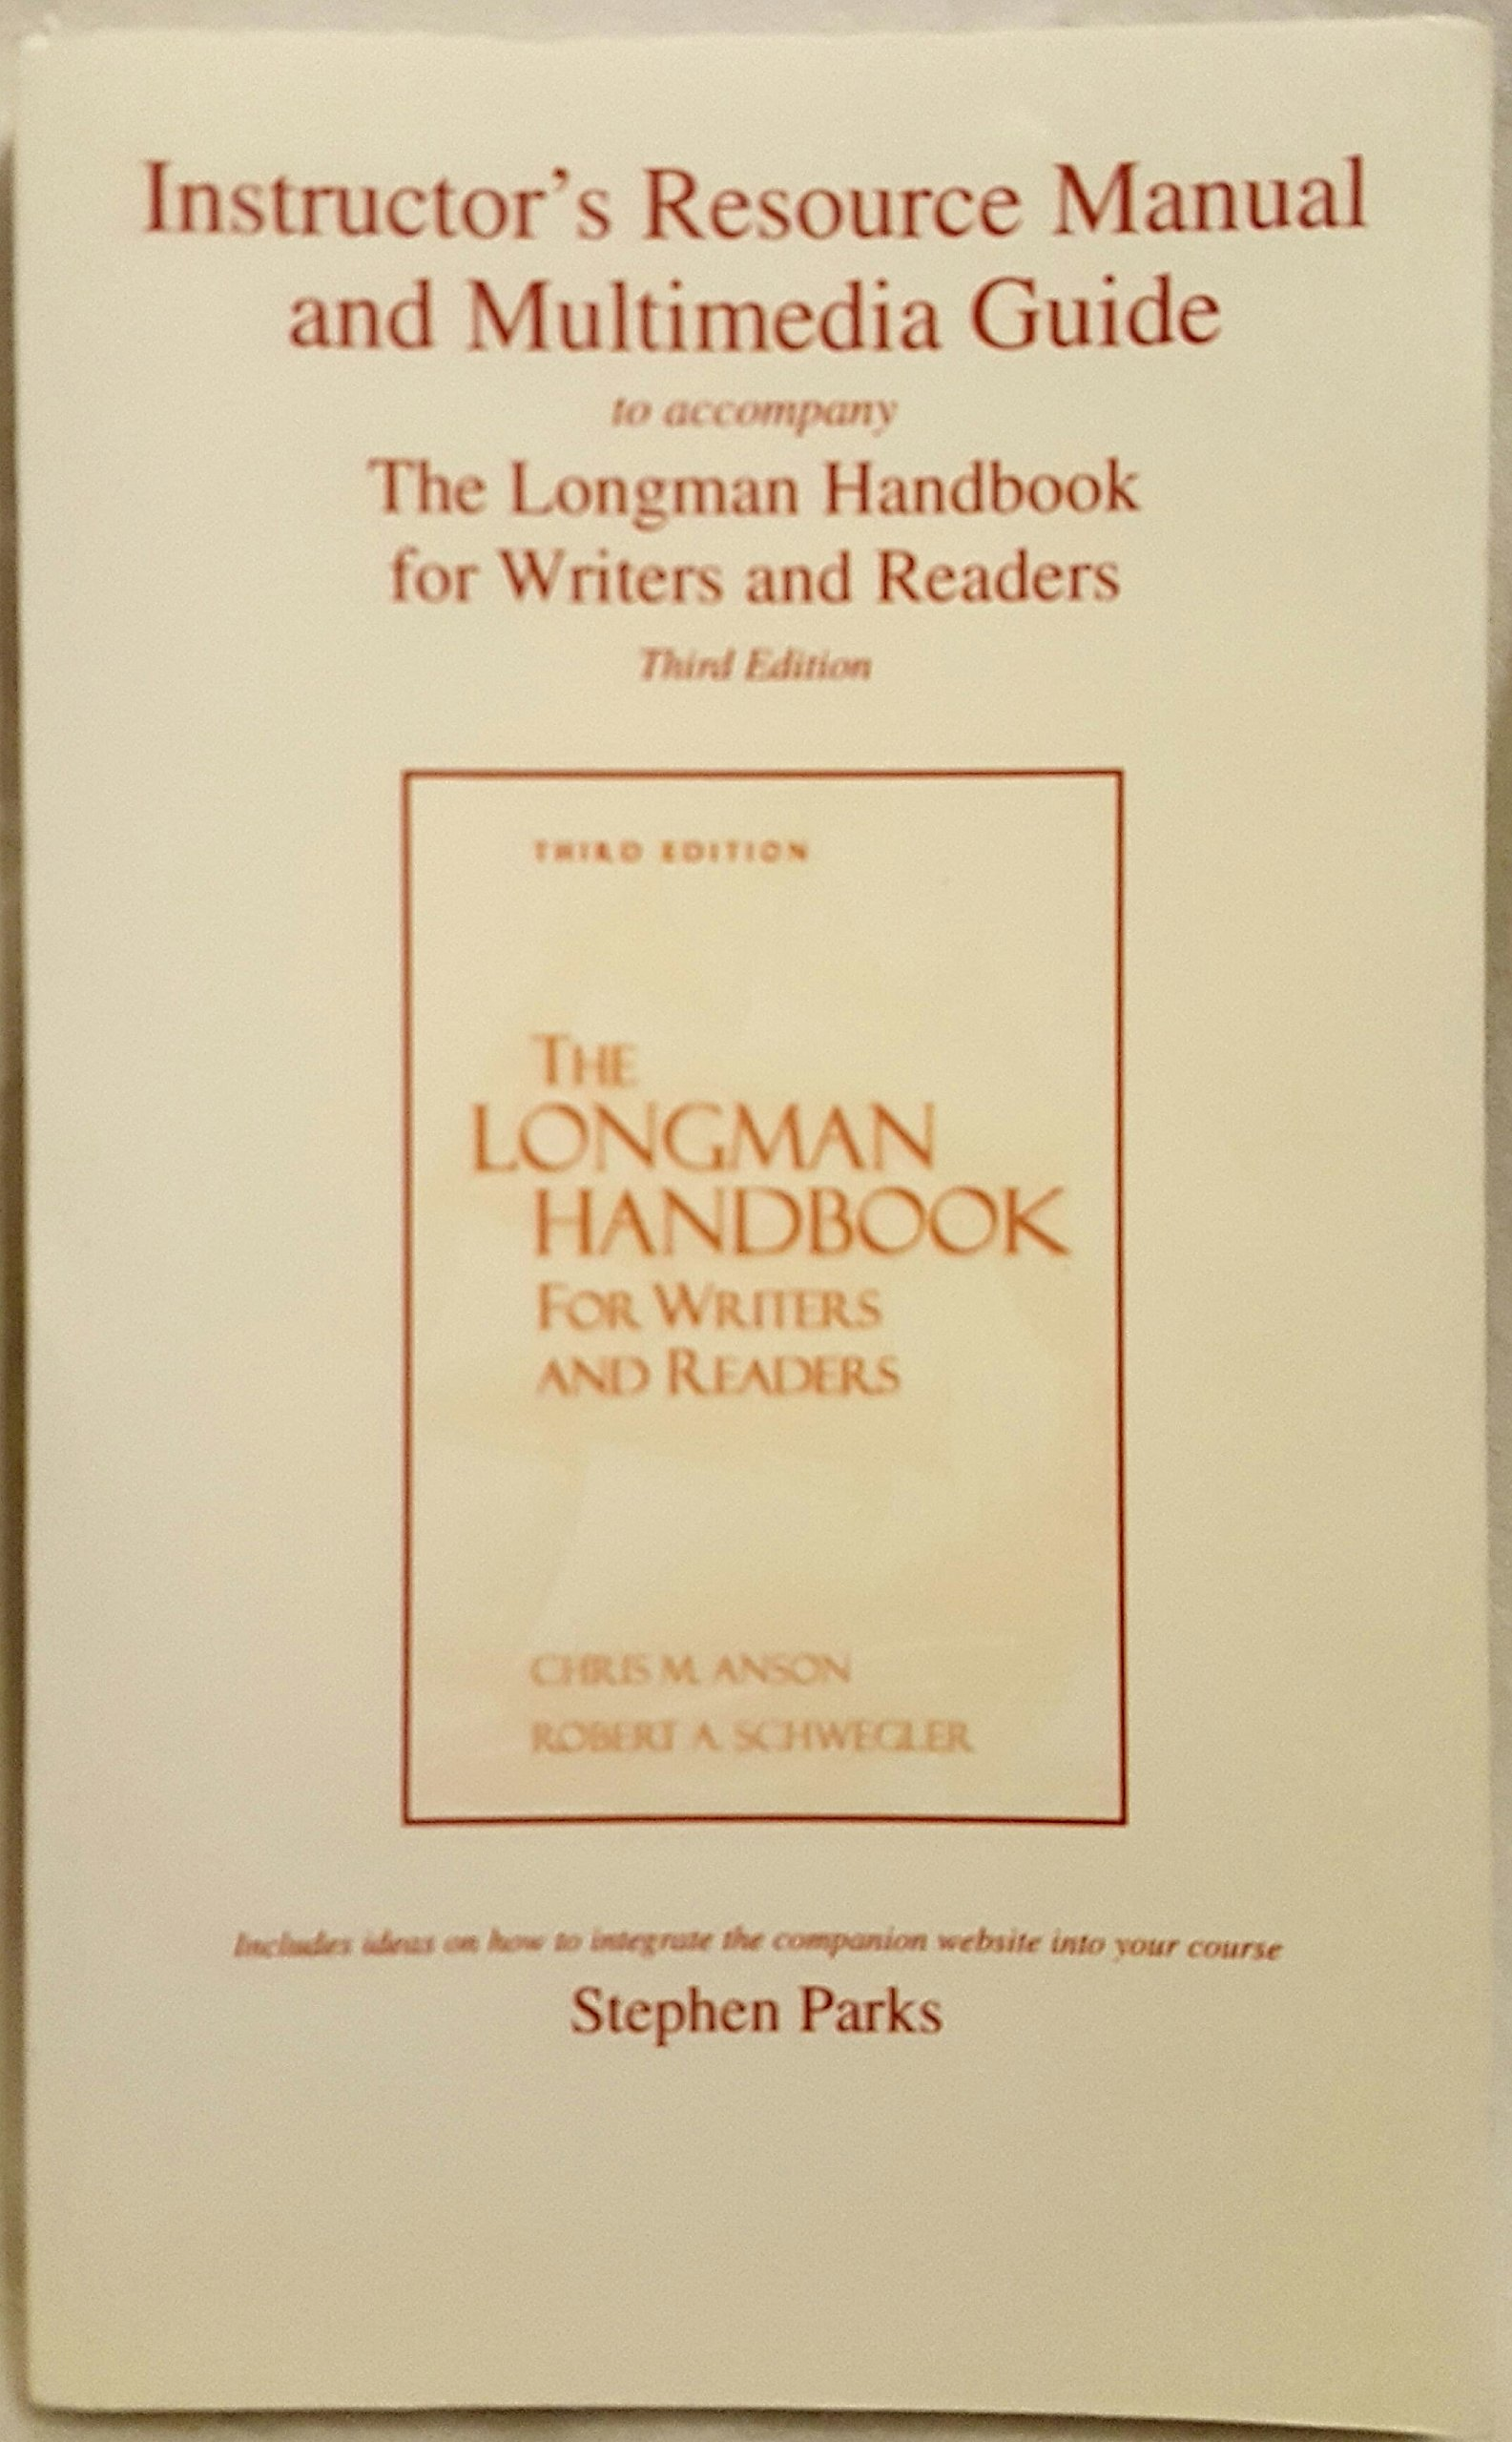 Download Instructor's Resource Manual and Multimedia Guide to Accompany the Longman Handbook for Writers and Readers Third Edition and the Longman Writer's Companion Second Edition pdf